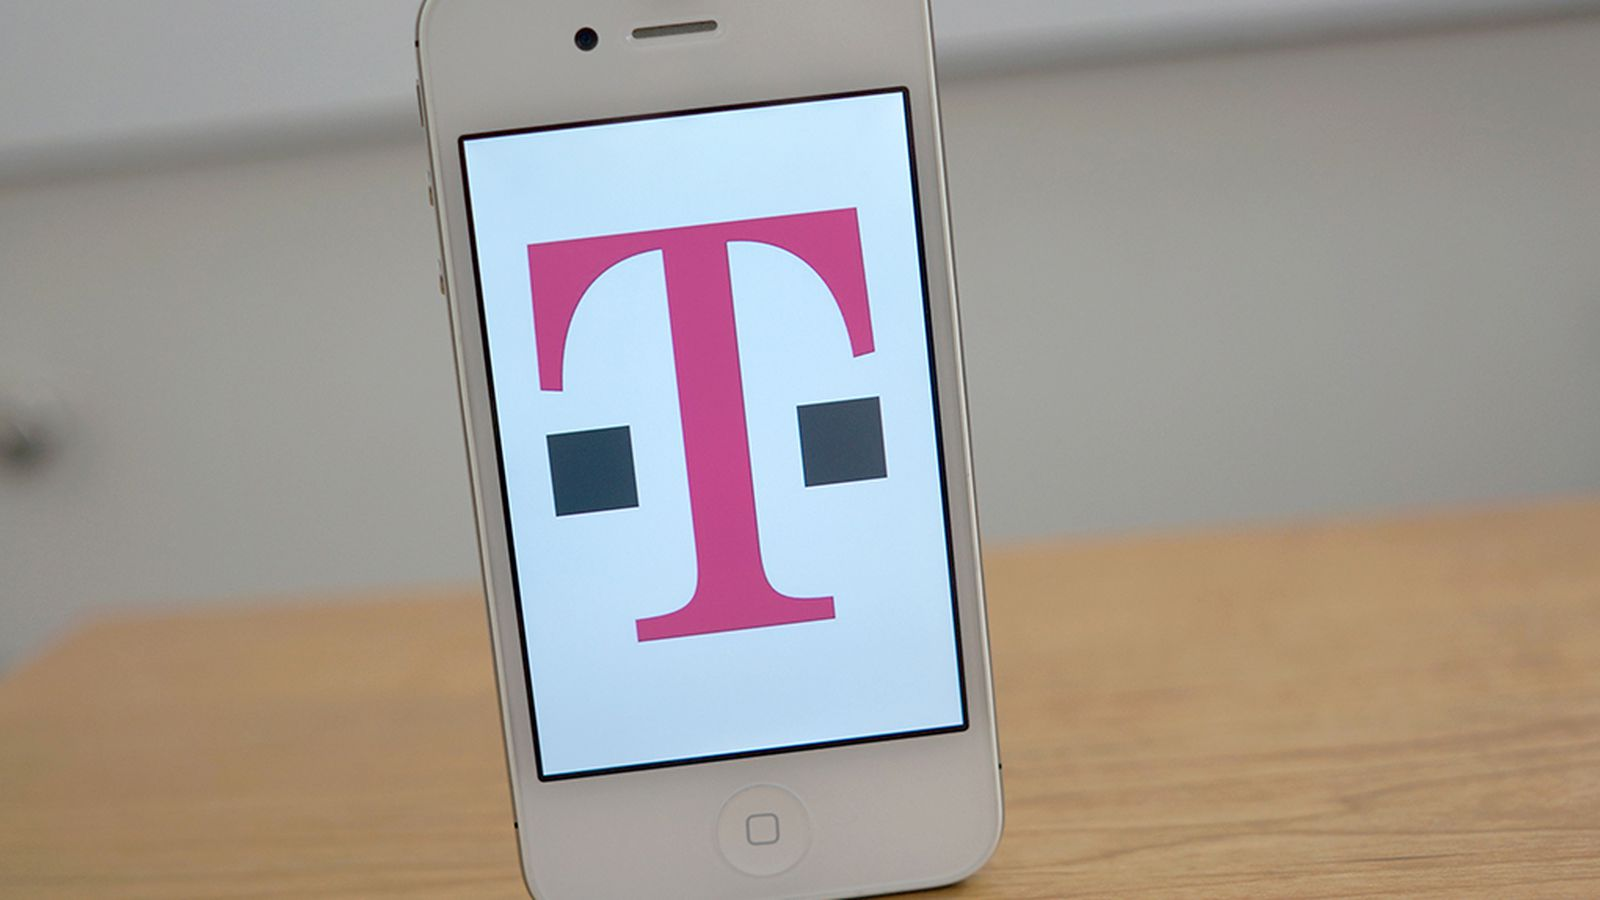 iphone 5 tmobile price t mobile quietly bumps up front price of an iphone 5 by 14601